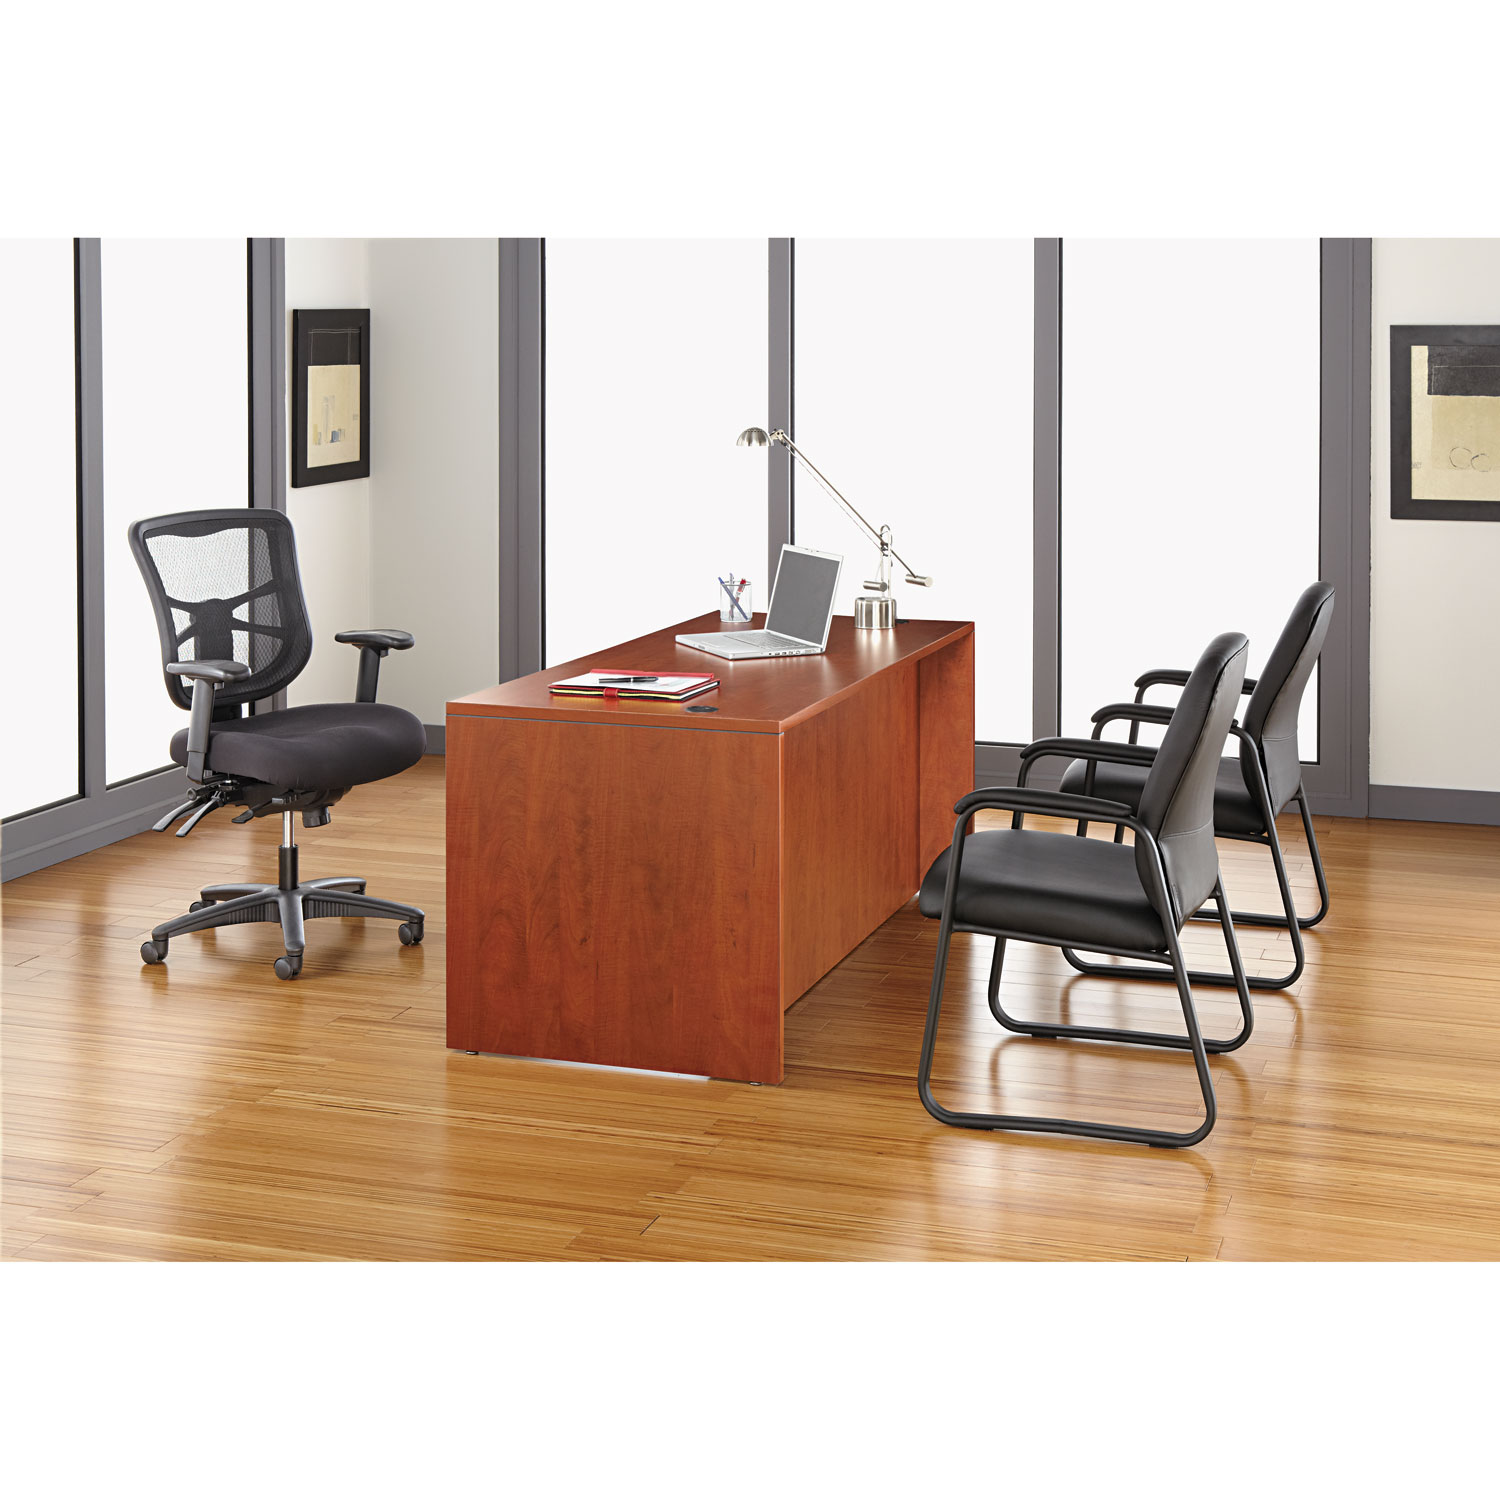 Affordable Office Supplies And Furniture